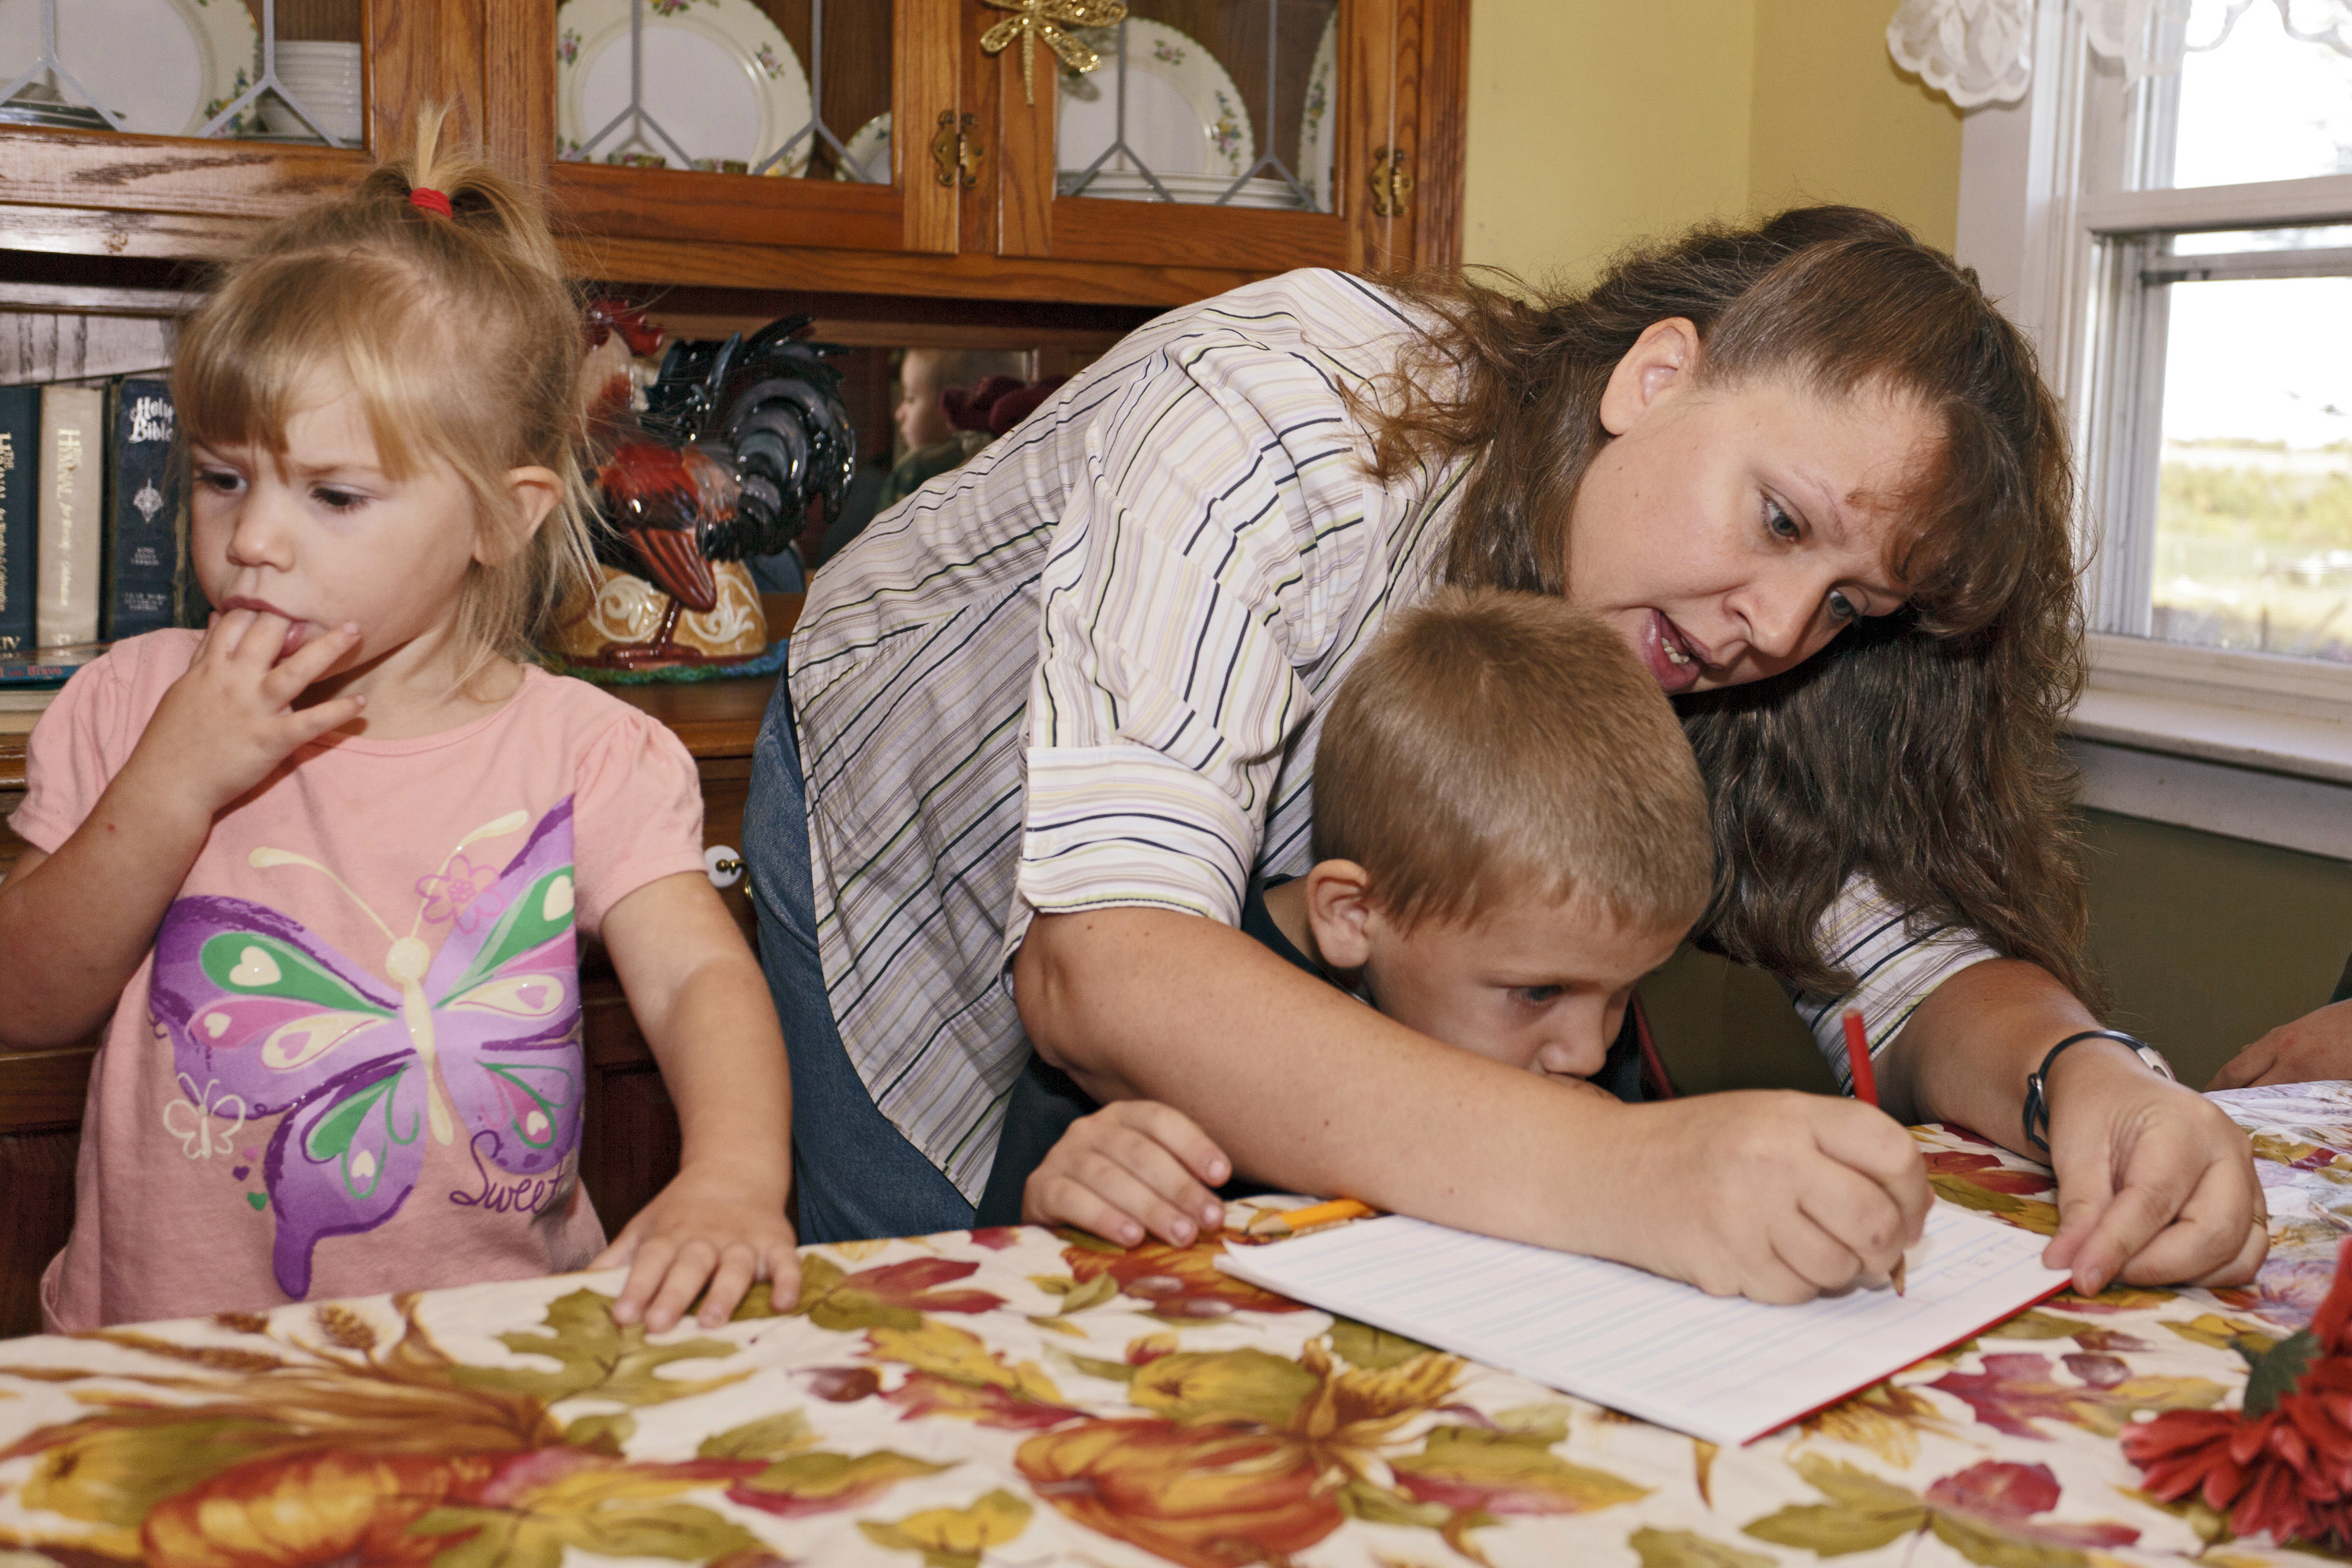 Christa Keagle works with her children Rebekah, 3, and Joshua Keagle, 6, during a homeschool assignment in St. Charles, Iowa September 30, 2011. After decades on the margins of political life, homeschoolers have become some of the most valued Republican foot soldiers in Iowa, where a few thousand activists can wield an outsize influence in the first nominating contest in the 2012 presidential election. Picture taken September 30.    REUTERS/Brian C. Frank  (UNITED STATES - Tags: POLITICS EDUCATION ELECTIONS) - GM1E7A409EJ01